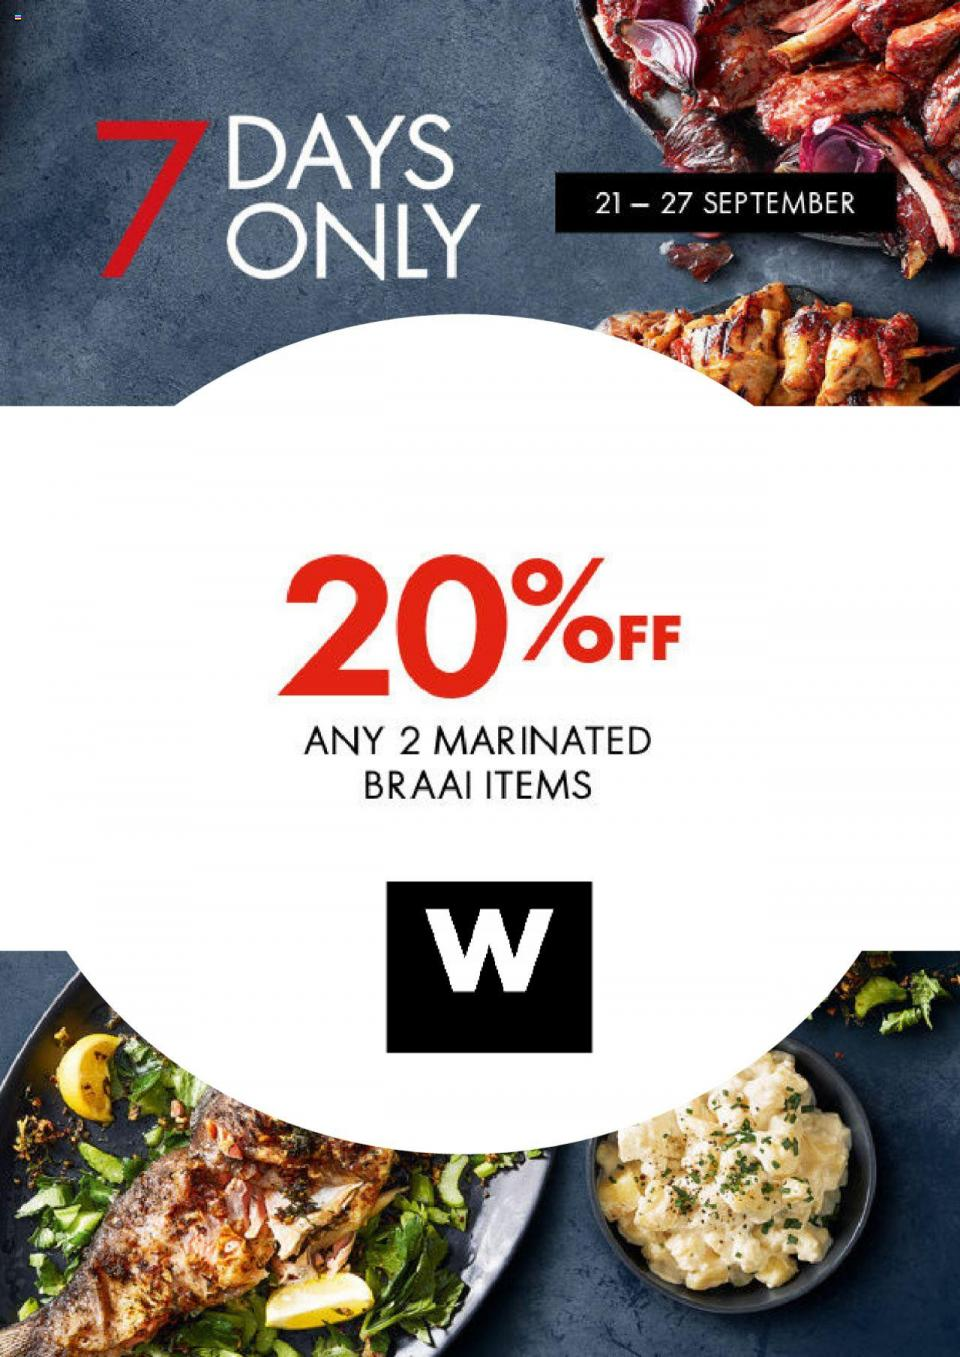 woolworths specials 20 off on braai items 21 september 2020